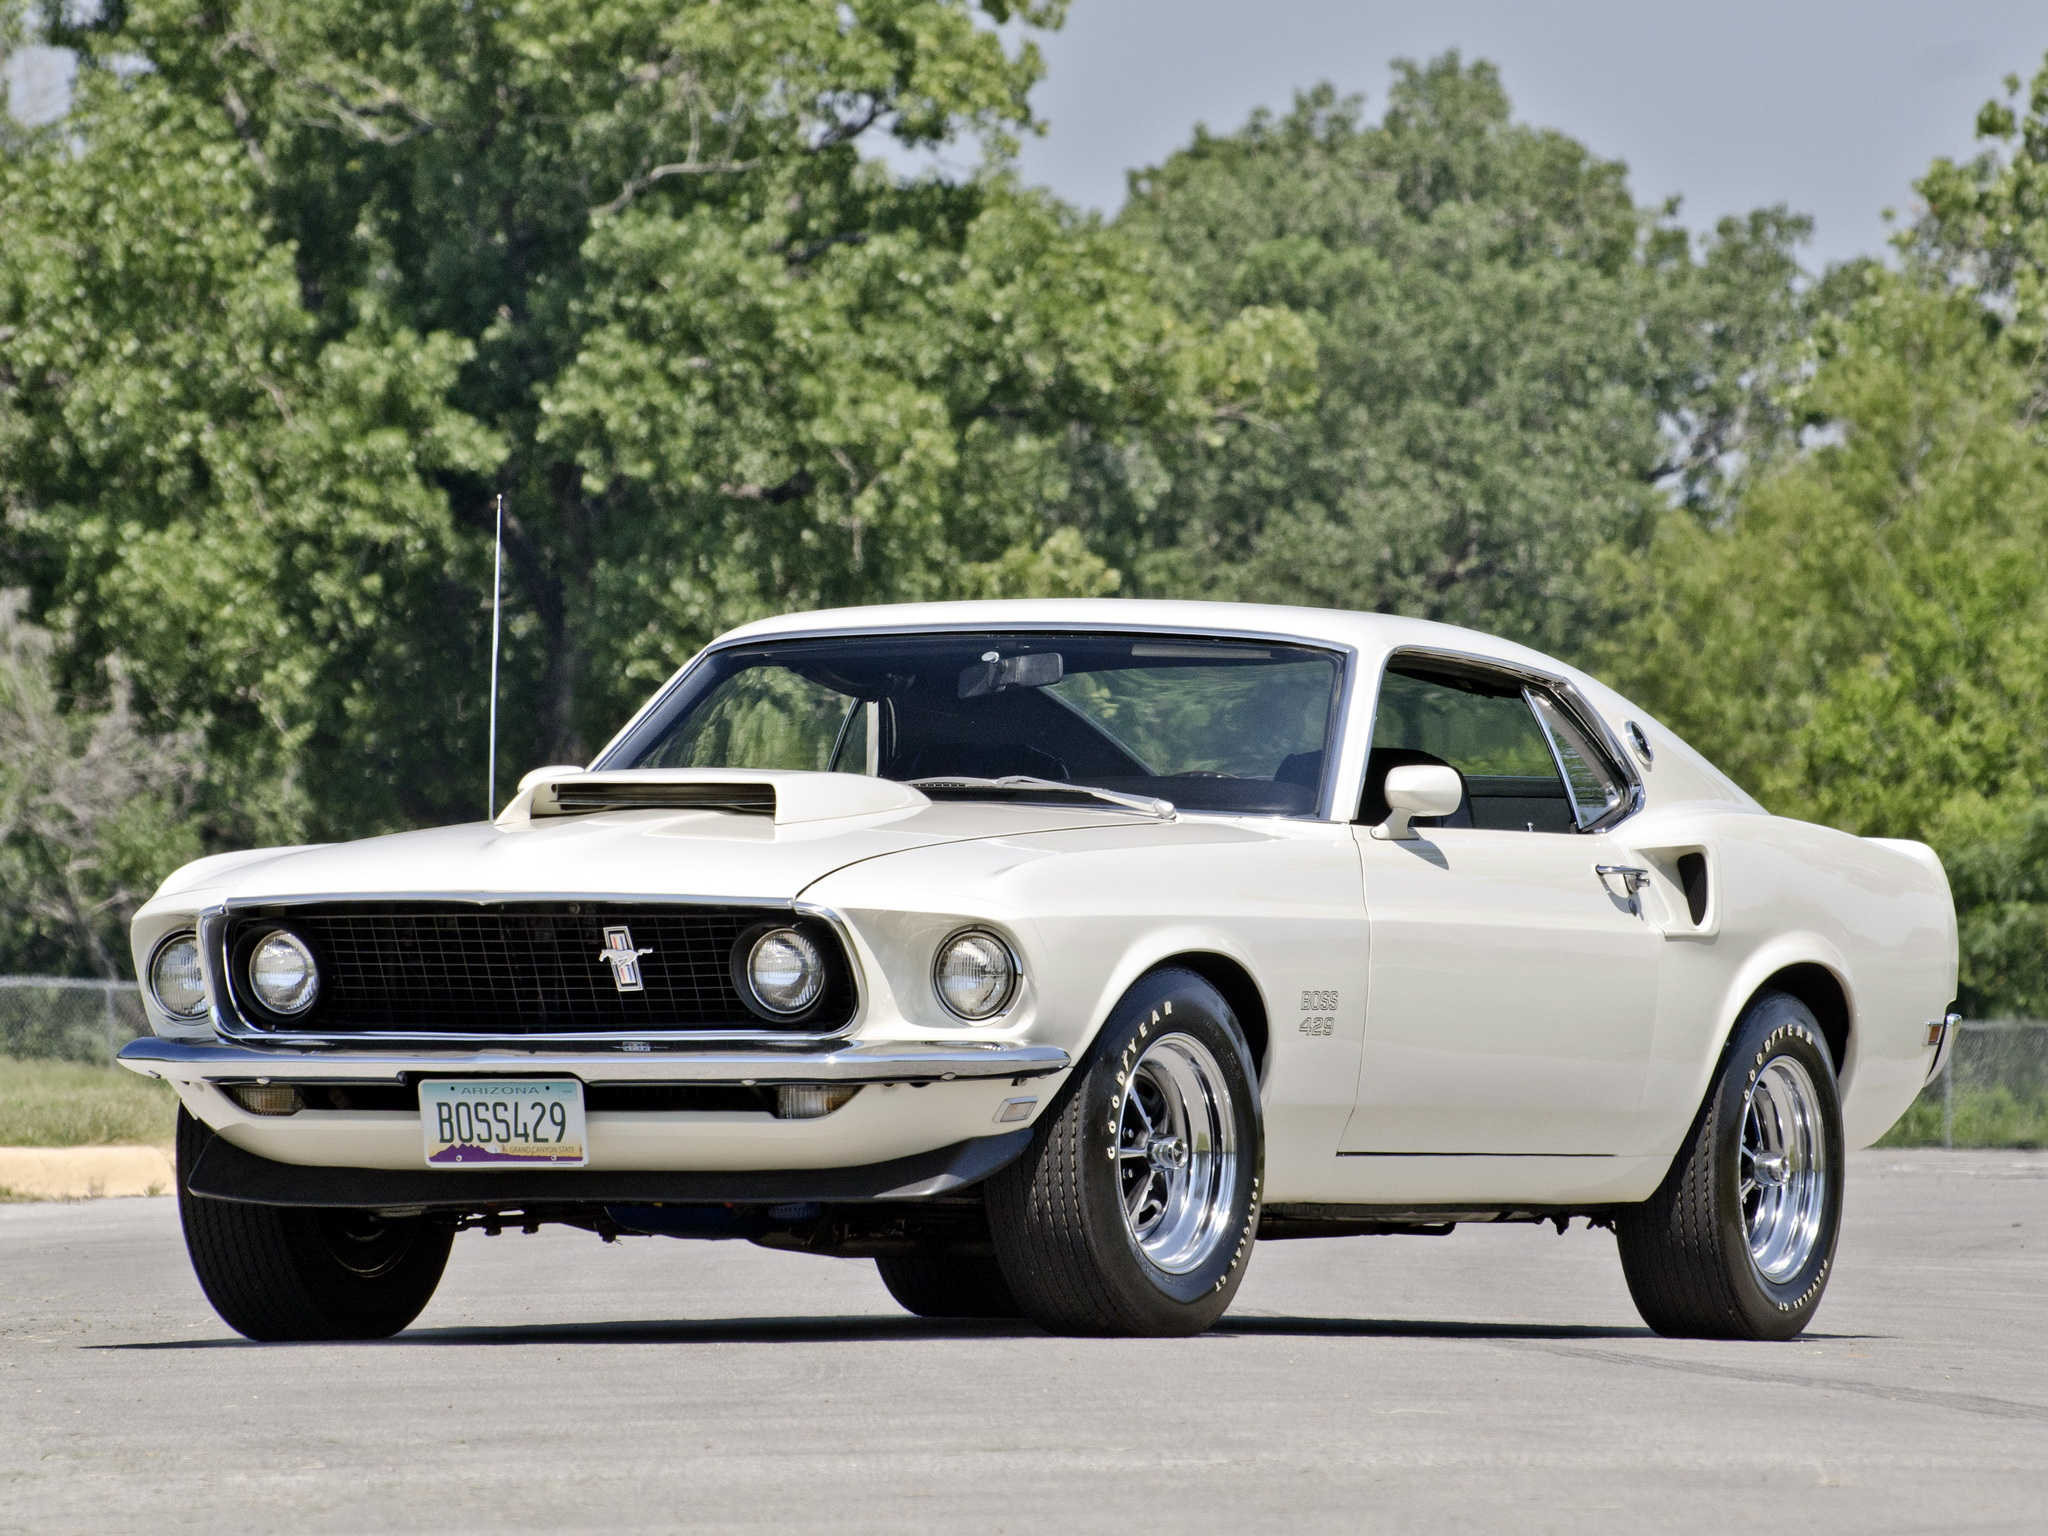 Why is the 1969 Boss 429 Mustang the Best Muscle car of All-Time?